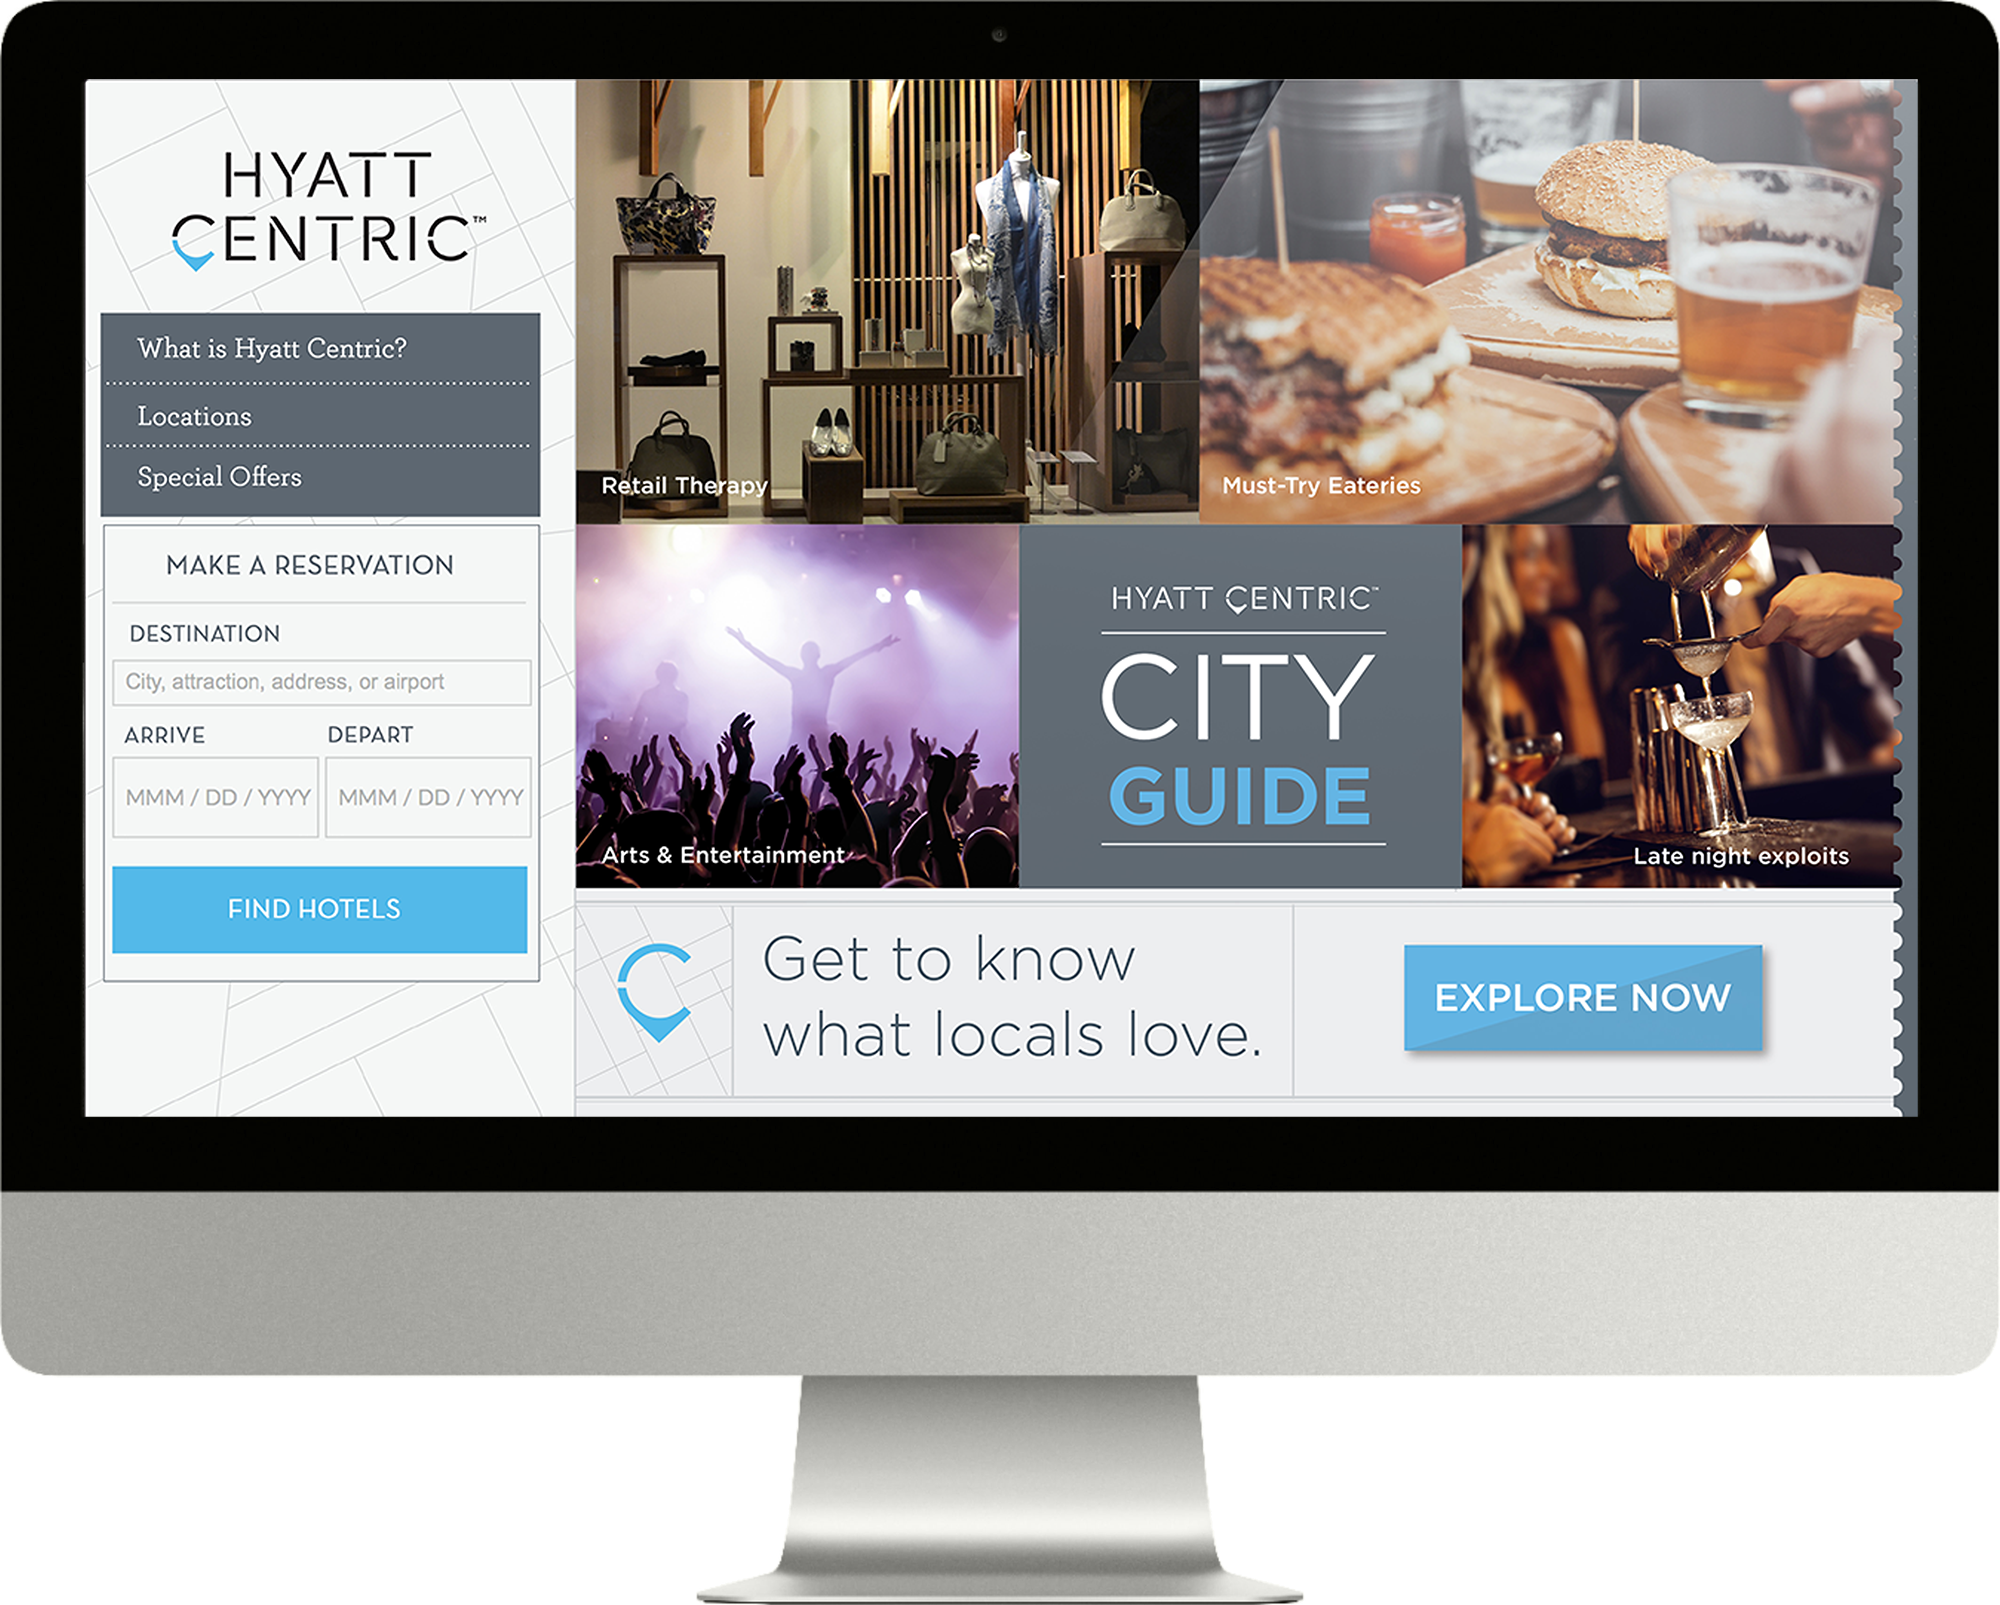 Hyatt Centric - website design for hotel by OMIH creative agency